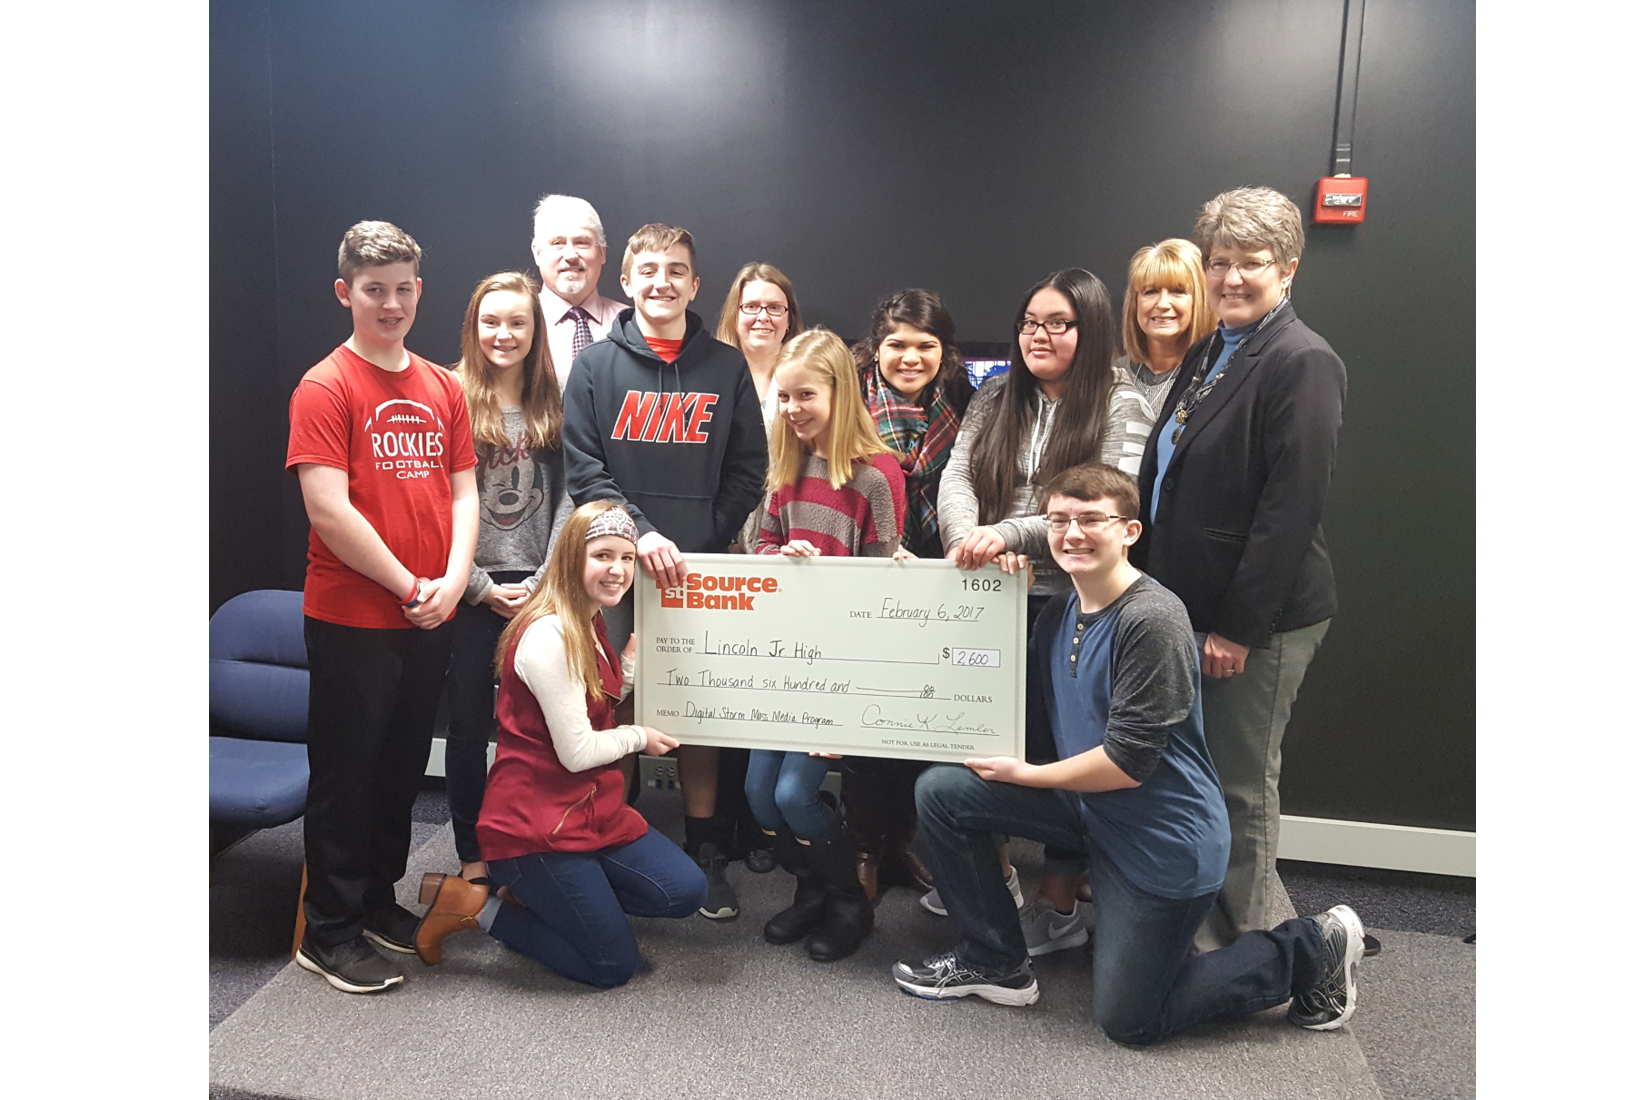 1st Source Bank contributes $2,600 to Lincoln Junior High Mass Media Program